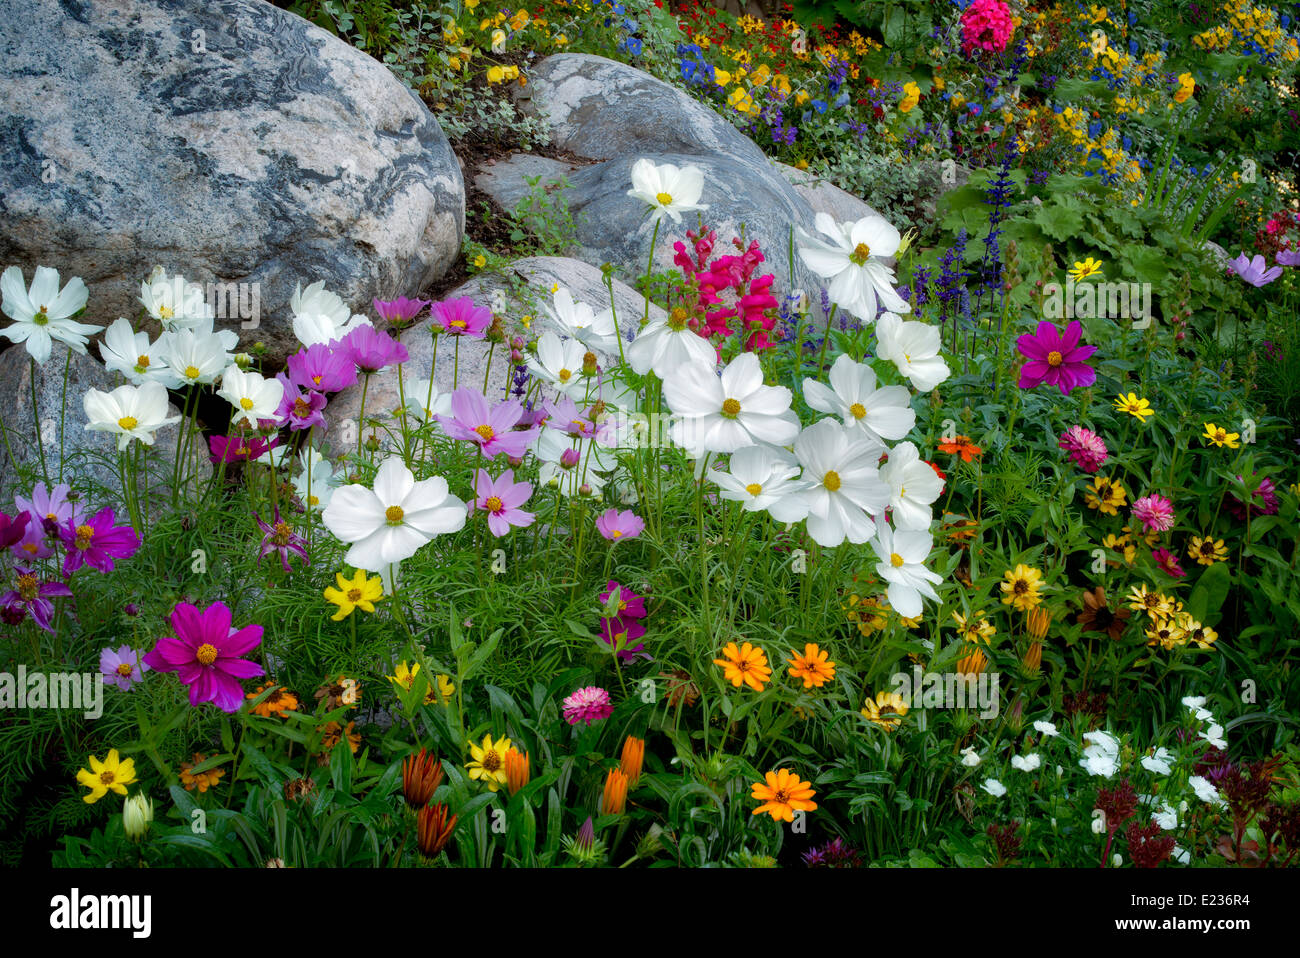 Mixed Flowers In Garden In Vail Village Vail Colorado Stock Photo